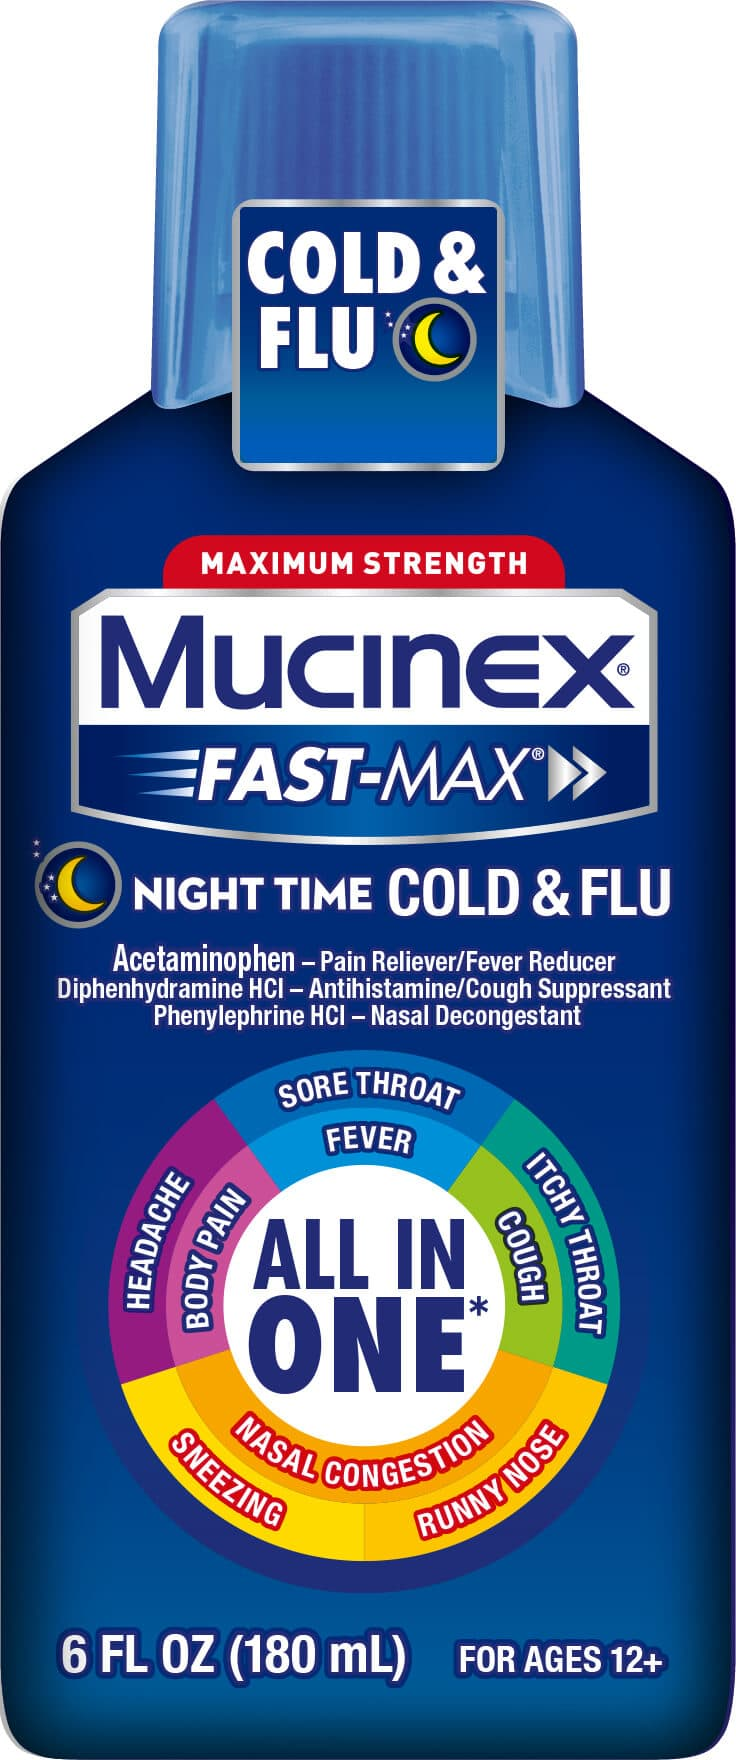 Mucinex Fast-Max Nighttime package